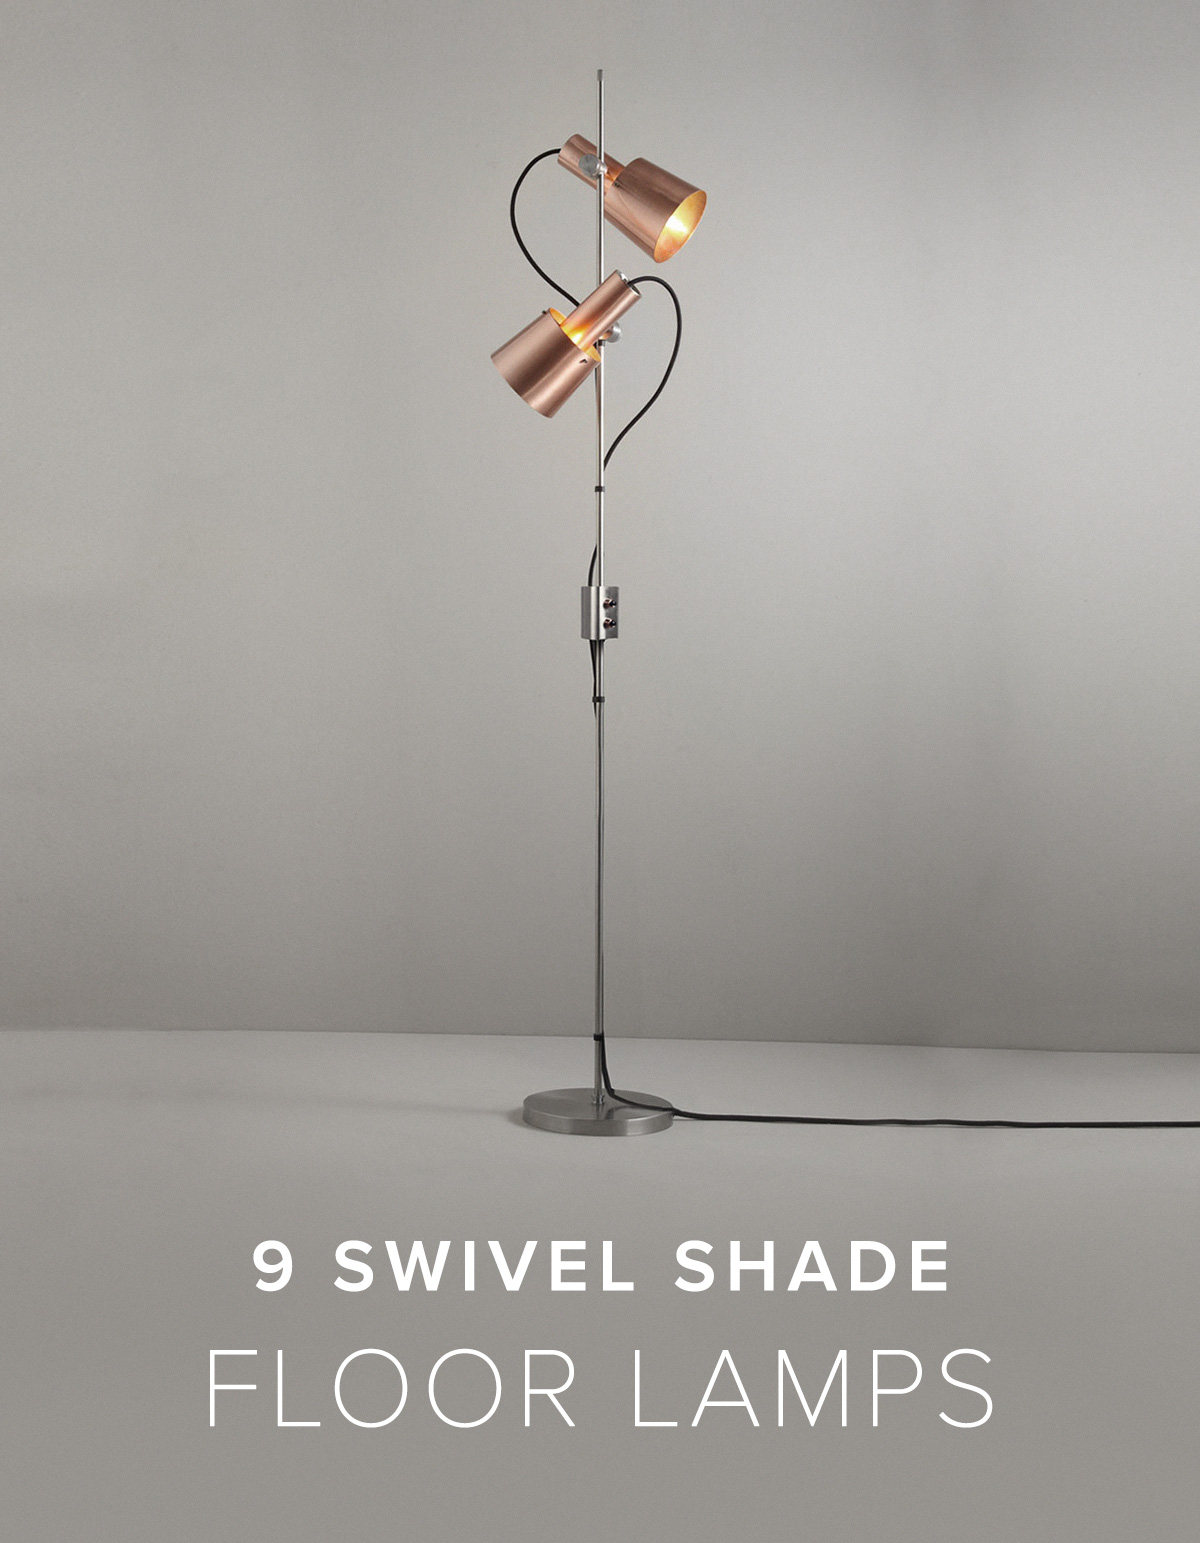 9 Swivel Shade Floor Lamps